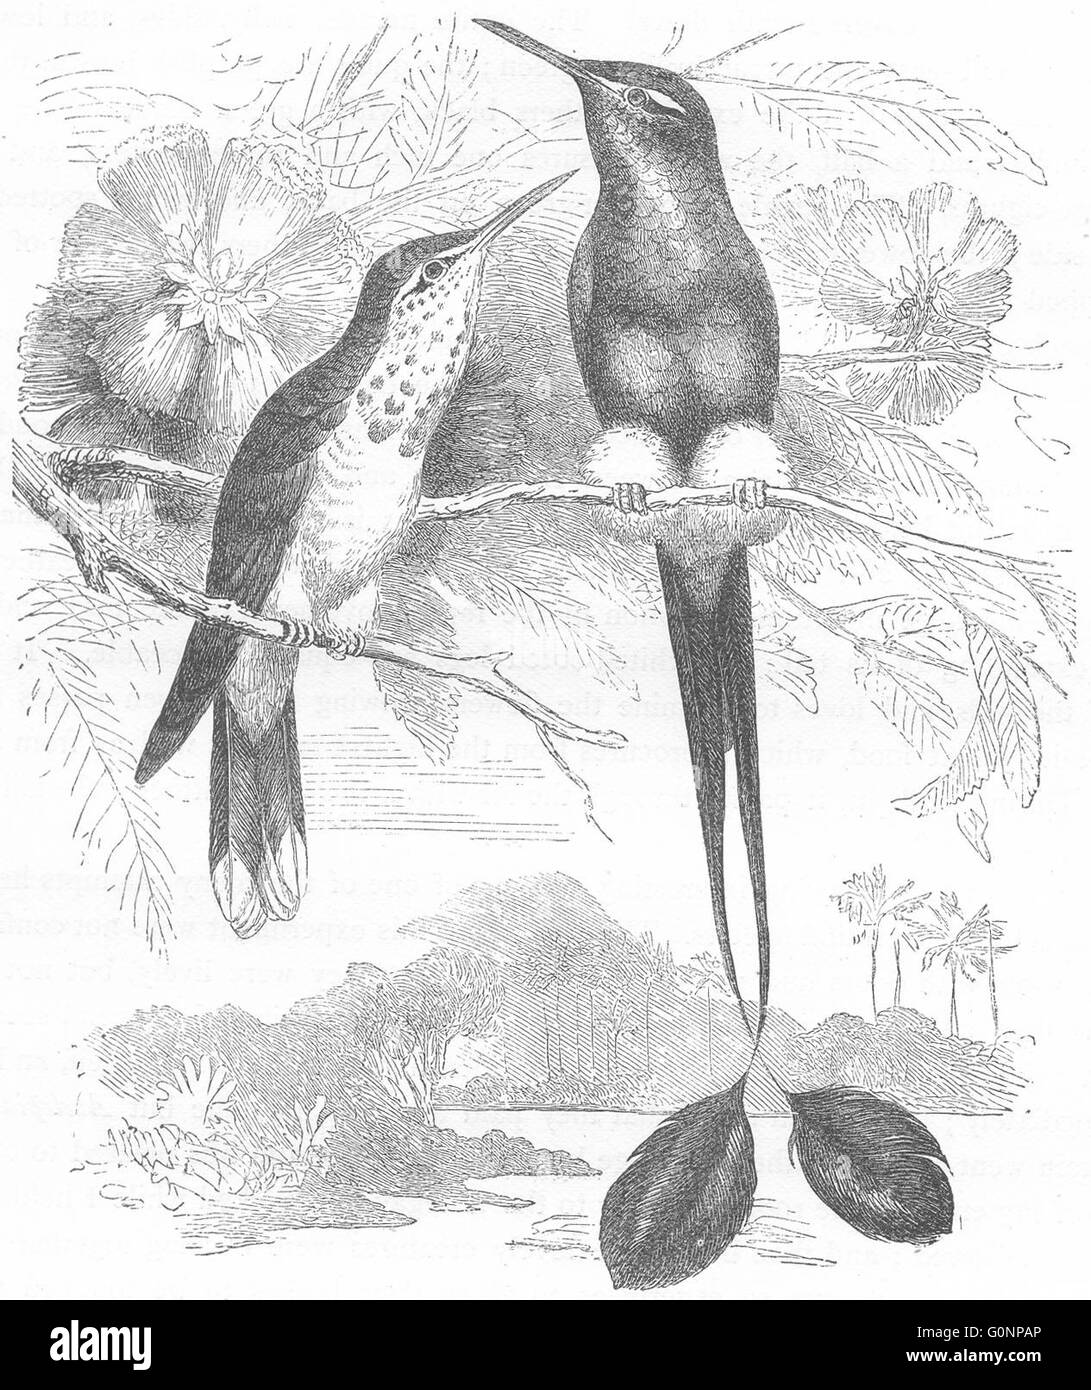 SEARCHERS: Hummingbird: White Footed Racket-Tail, antique print c1870 - Stock Image